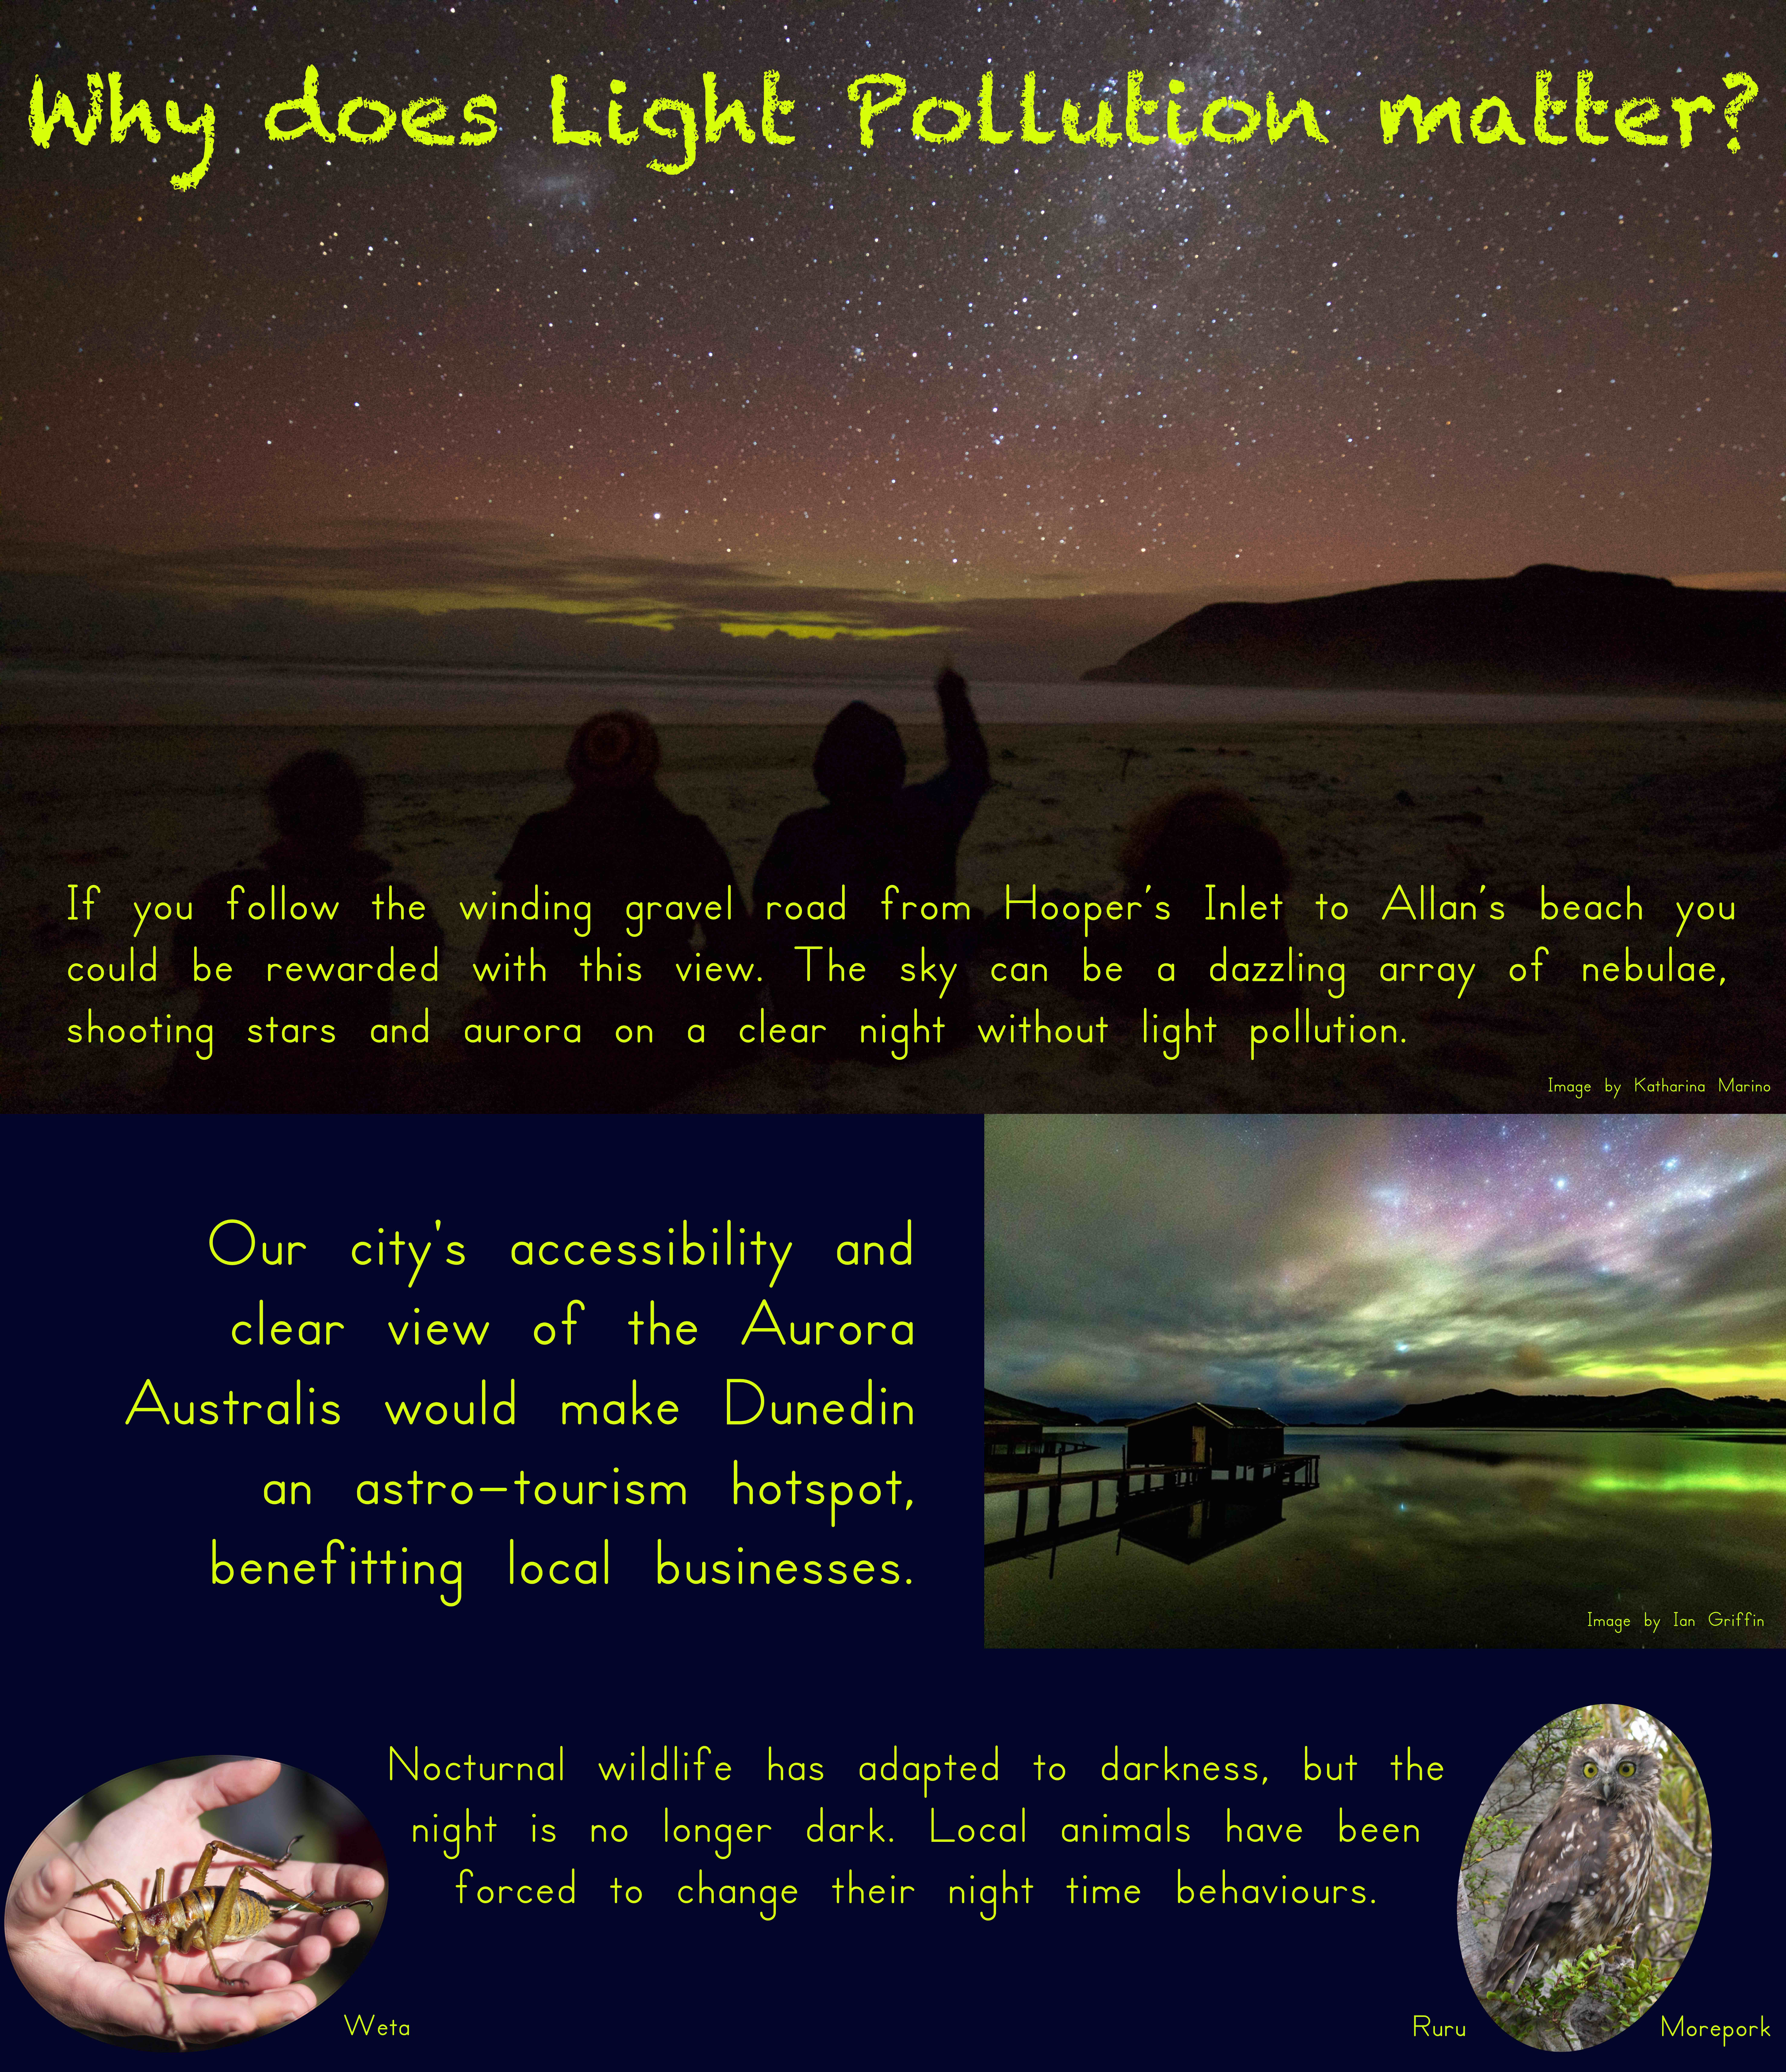 Why does light pollution matter